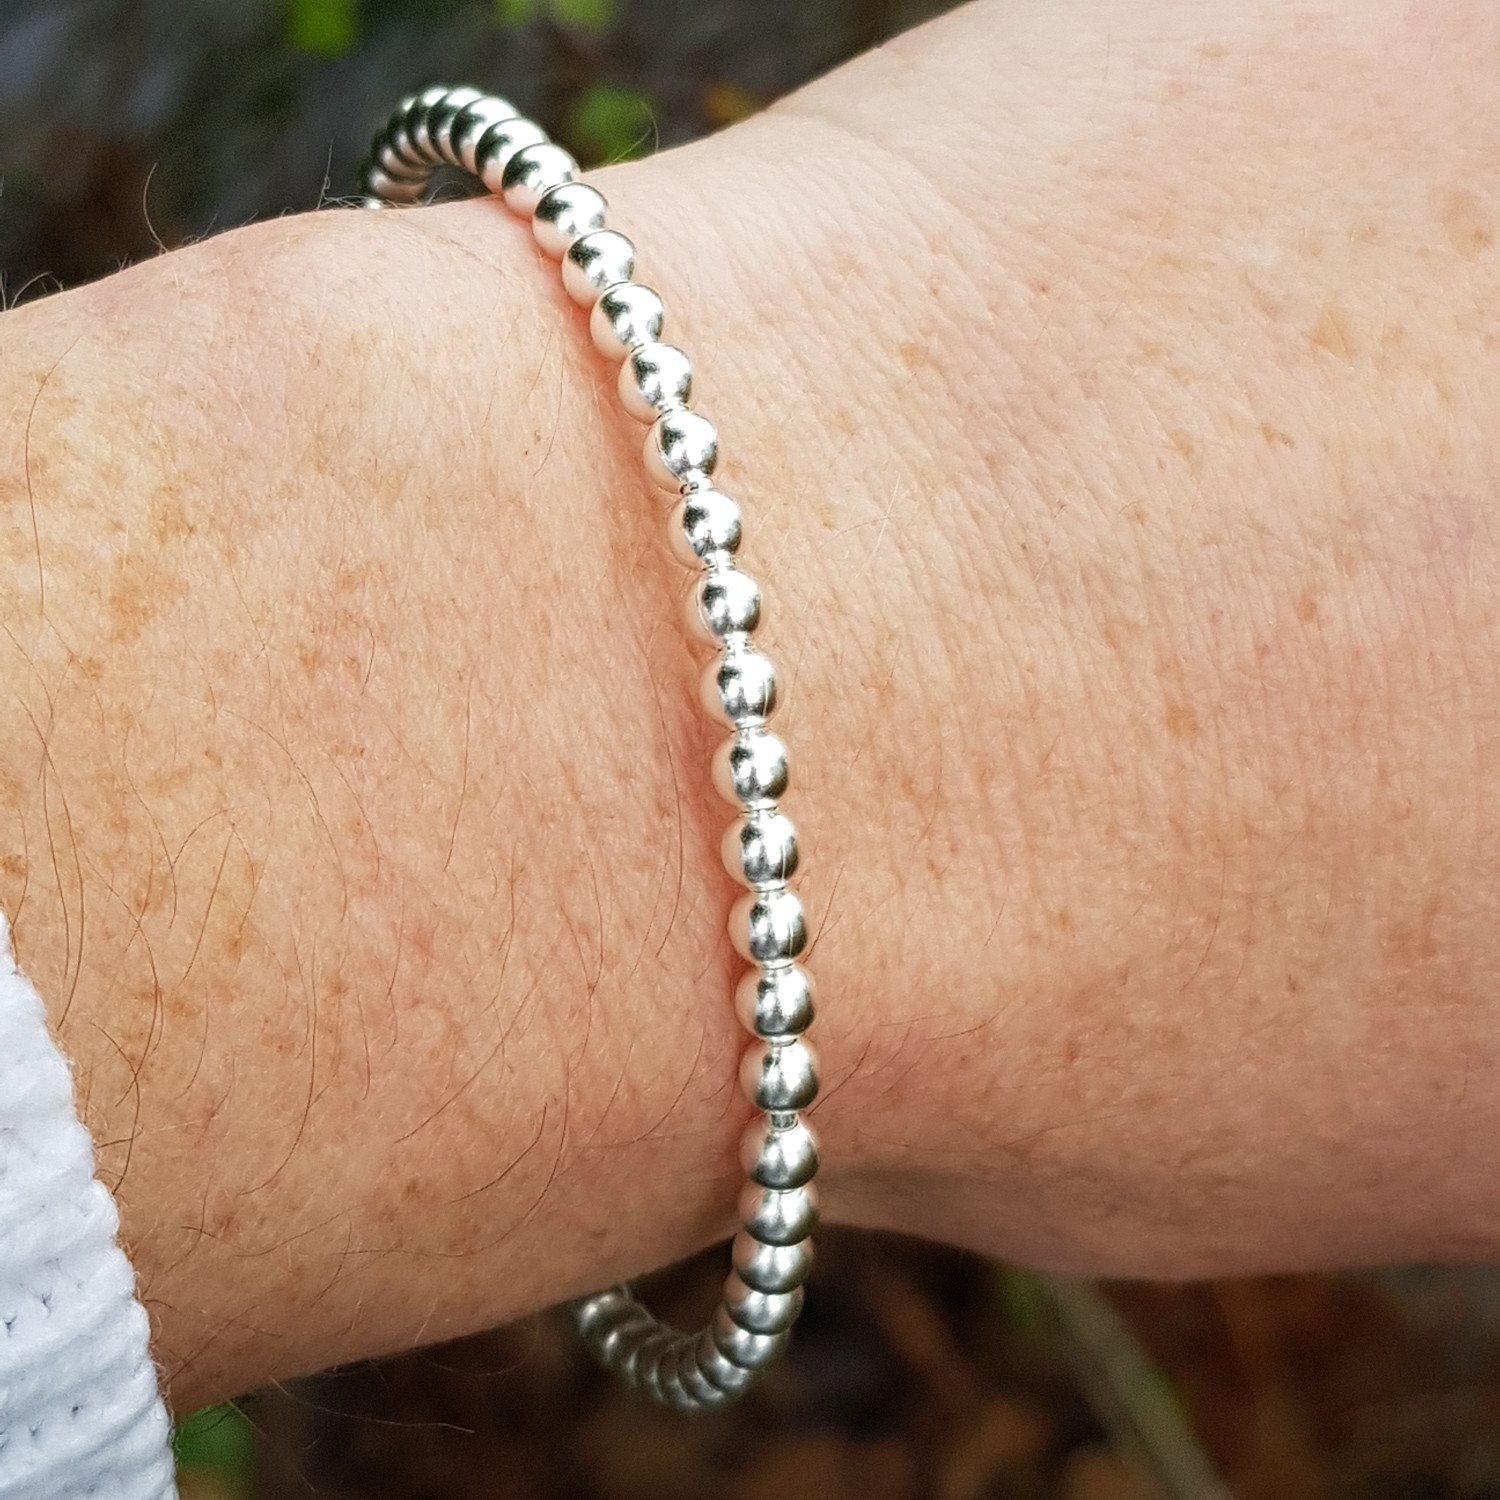 SILVER BANGLE - ONE ONLY - WAS £59 NOW £30 WITH CODE